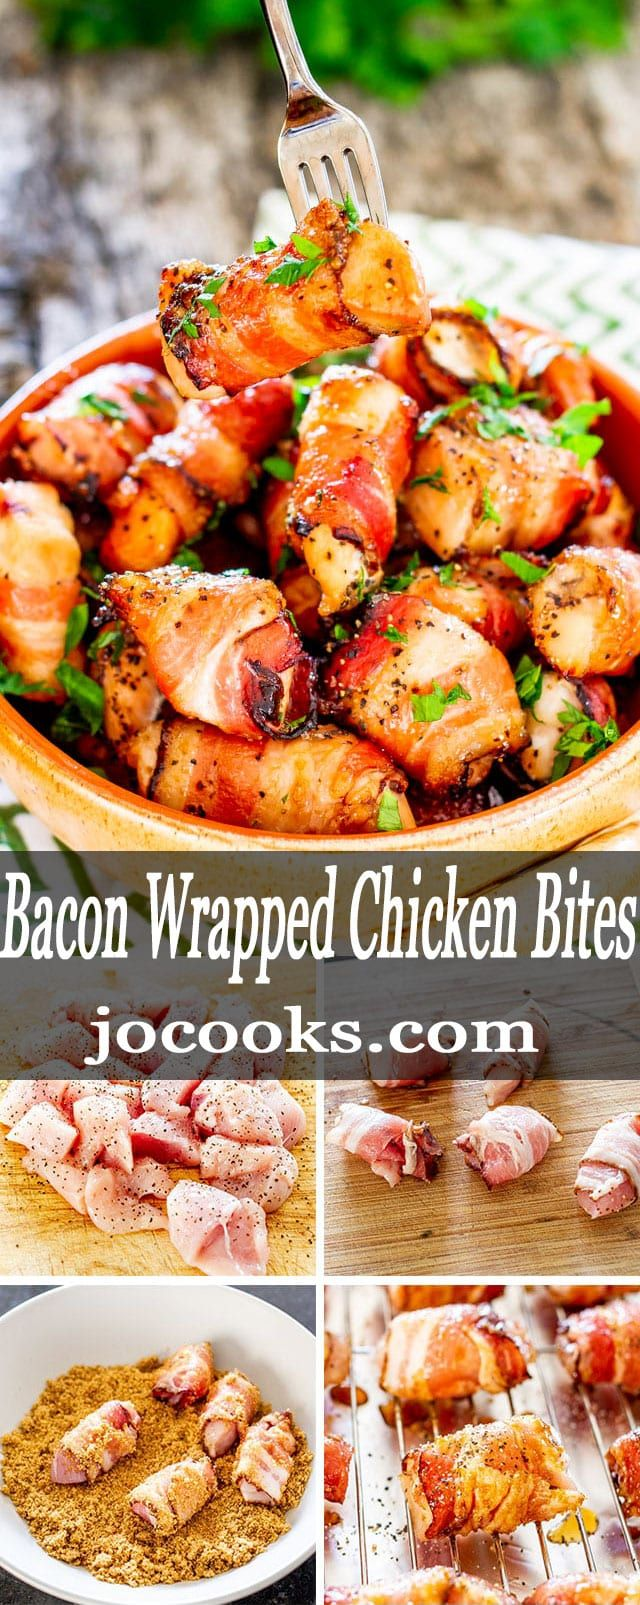 Bacon Wrapped Chicken Bites - Perfectly seasoned chicken pieces, wrapped in glorious bacon, rolled